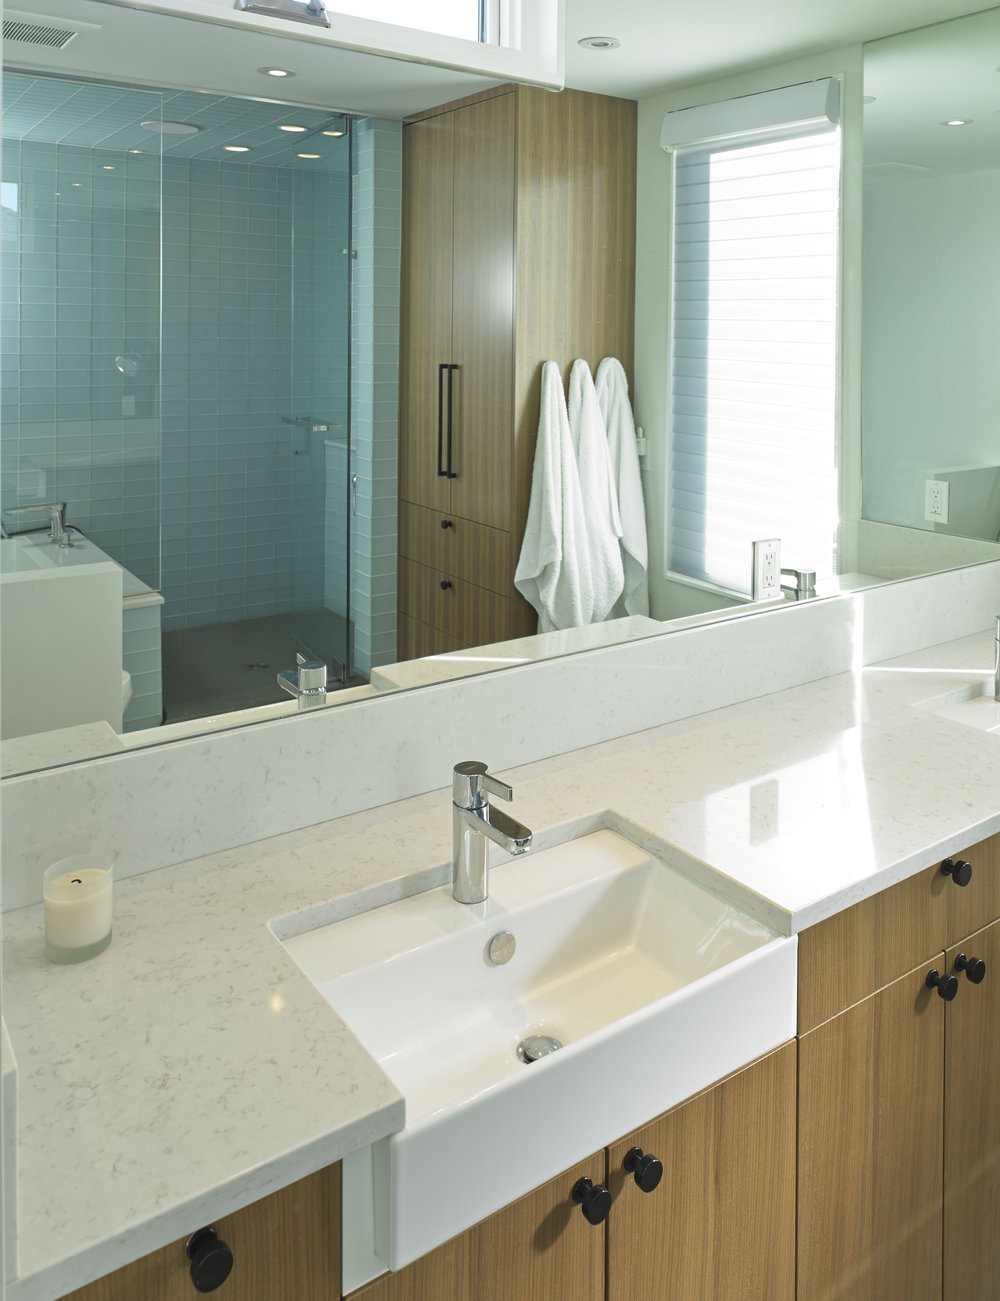 turkel_modern_design_prefab_home_bankview_house_calgary_bathroom.jpg